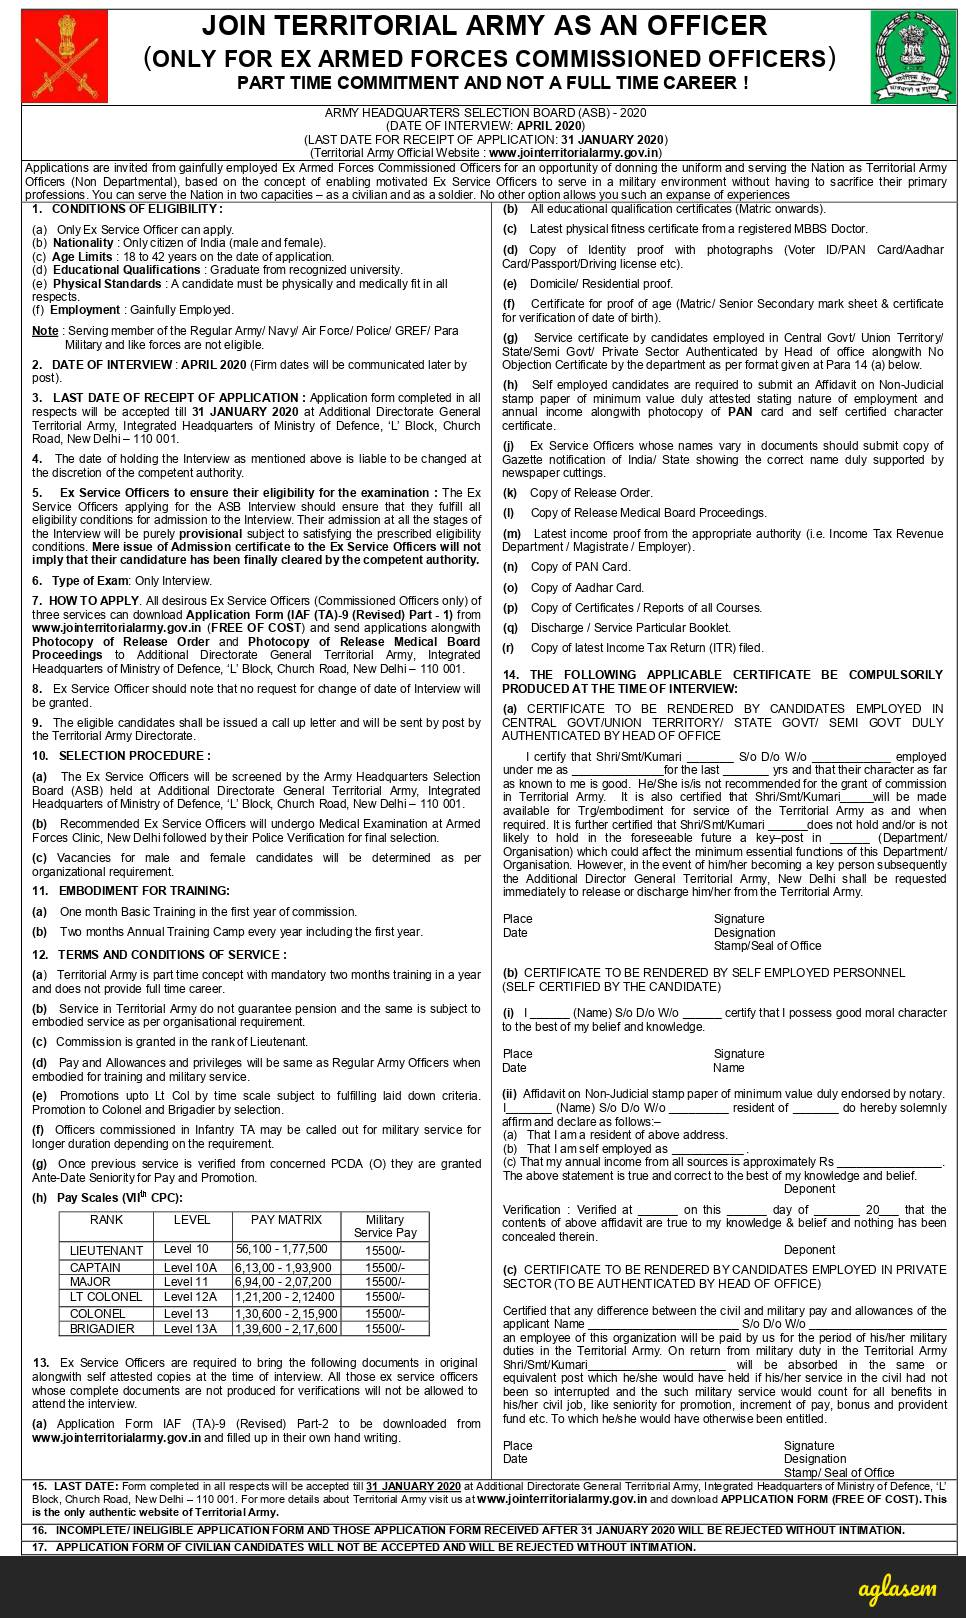 Territorial Army Recruitment 2020